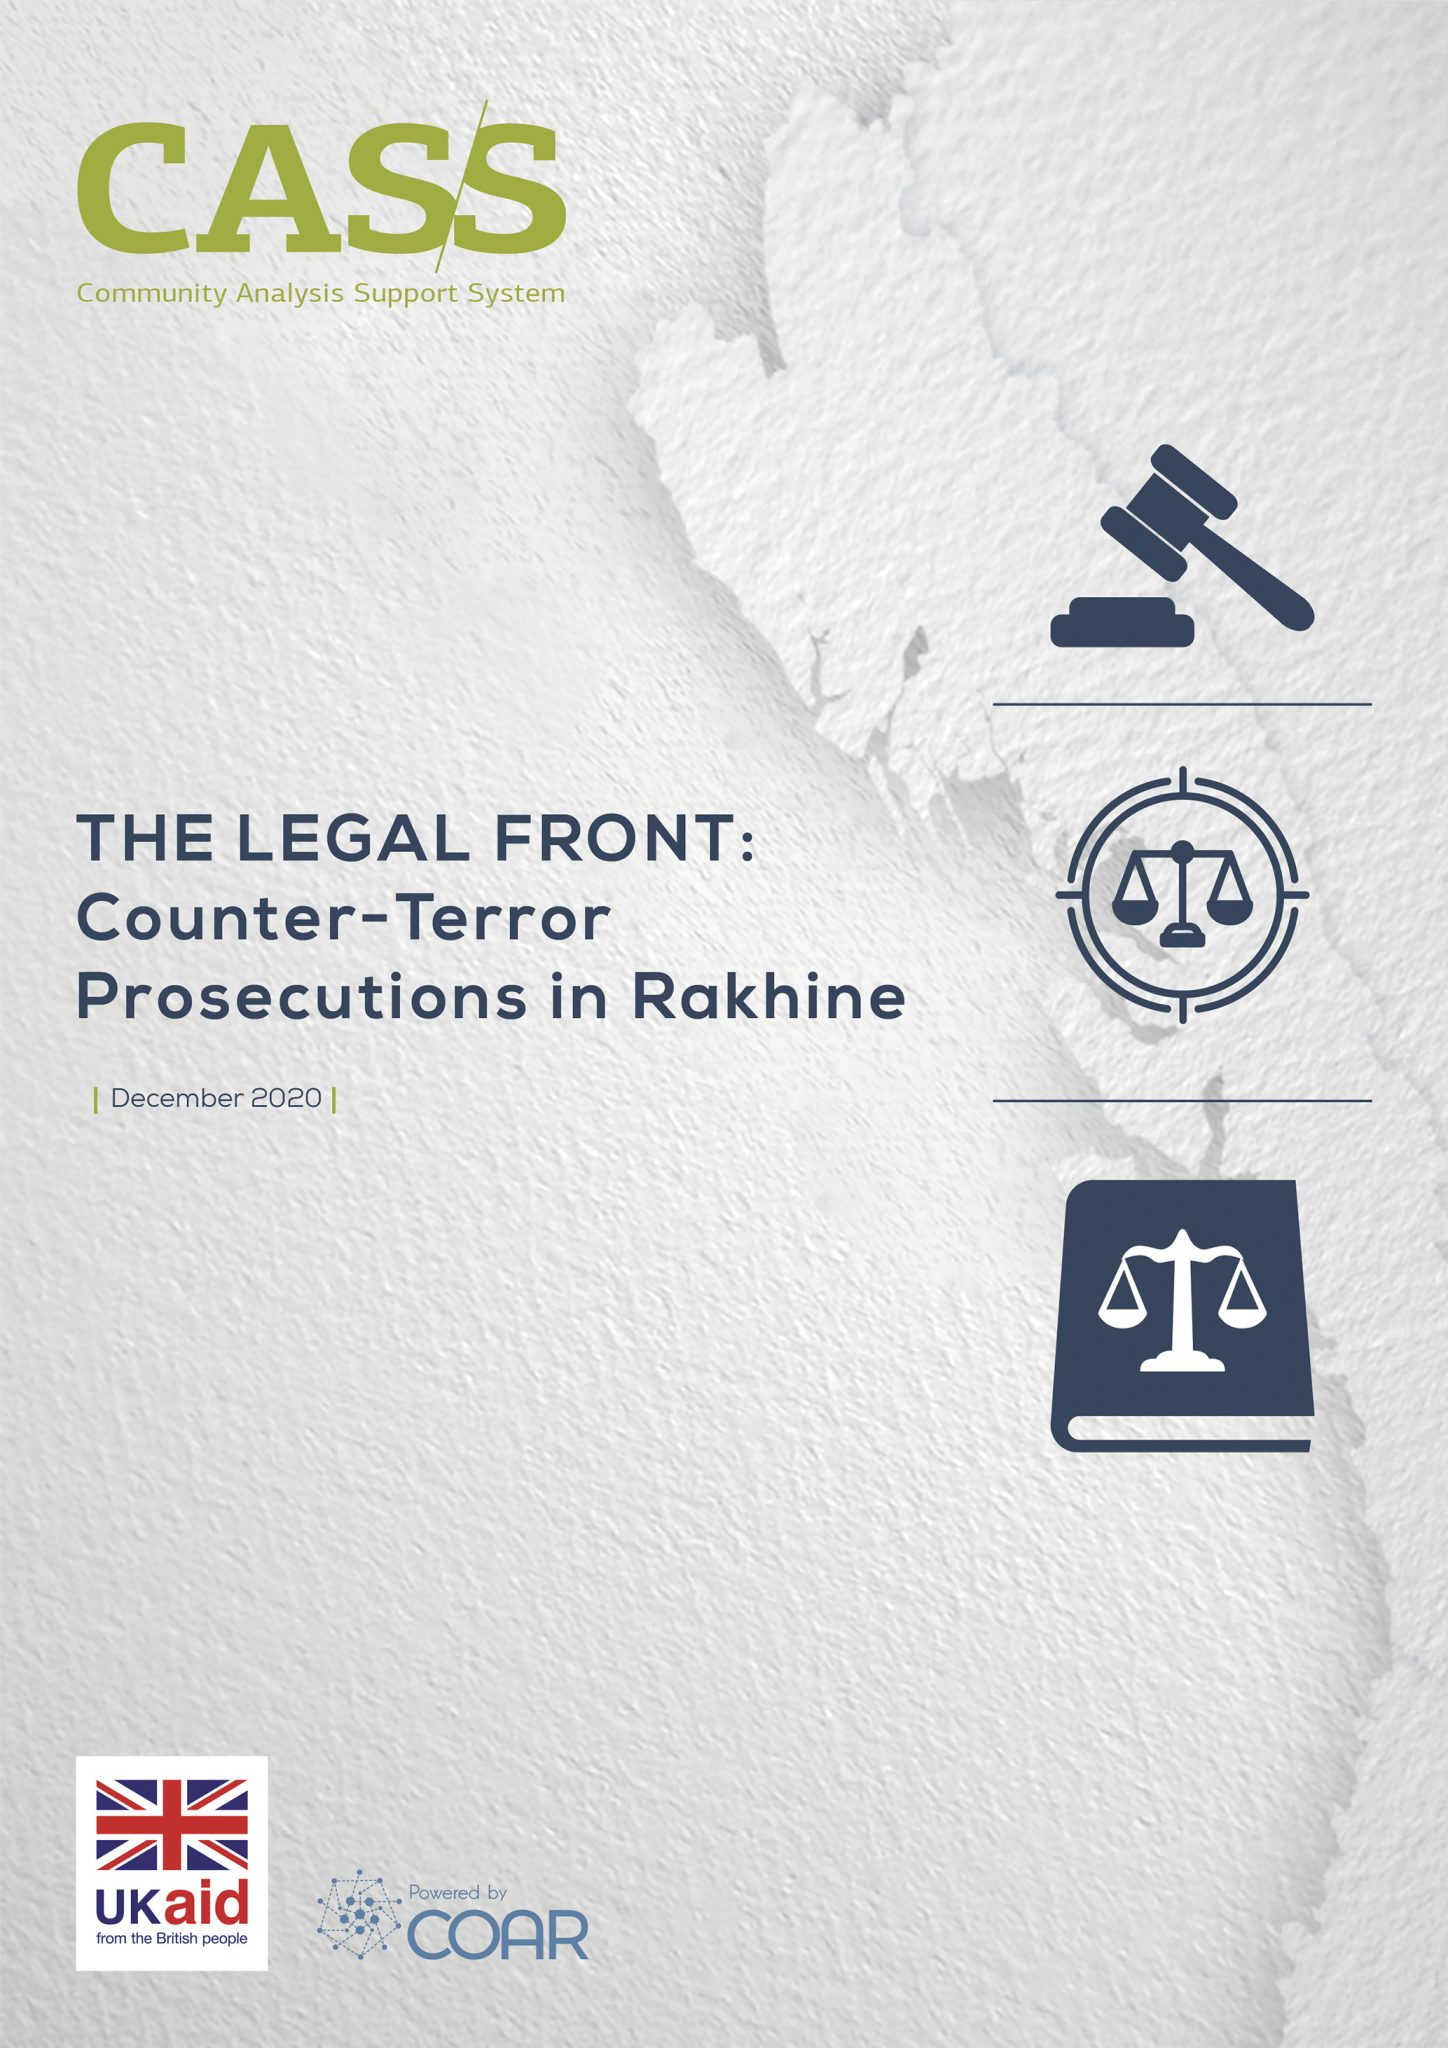 The Legal Front: Counter-Terror Prosecutions in Rakhine